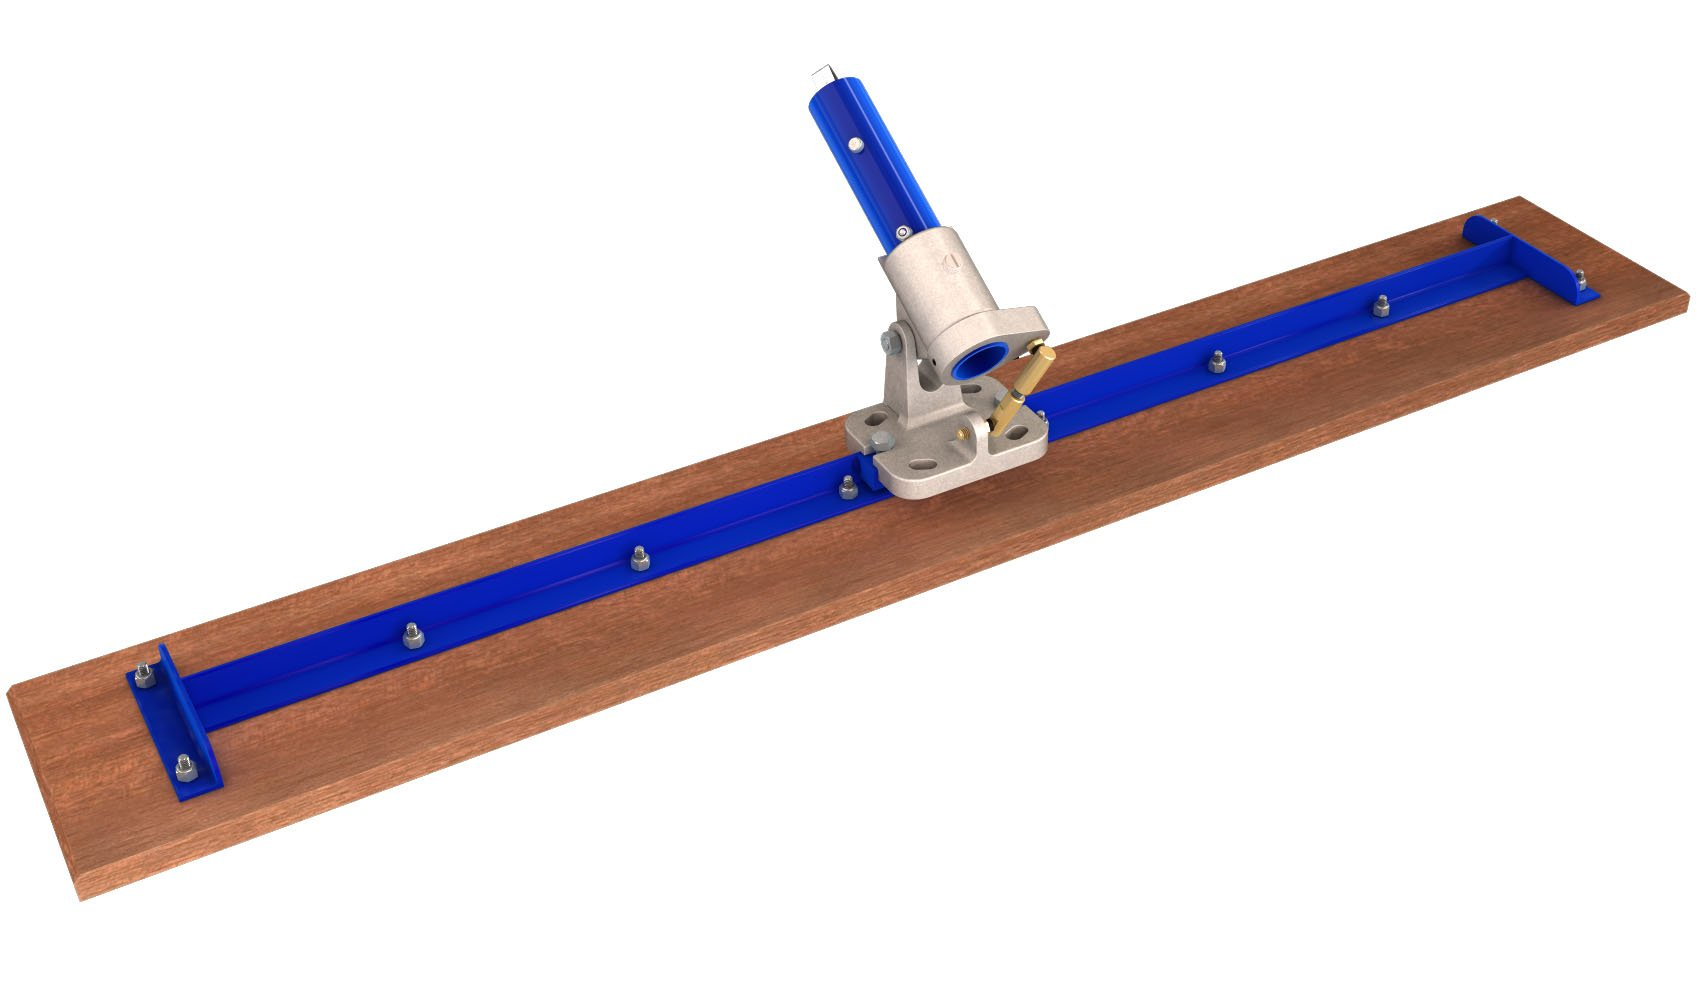 Bon 82-149 48-Inch by 7-1/4-Inch Square End Wood Bull Float with Rock N Roll Bracket by bon